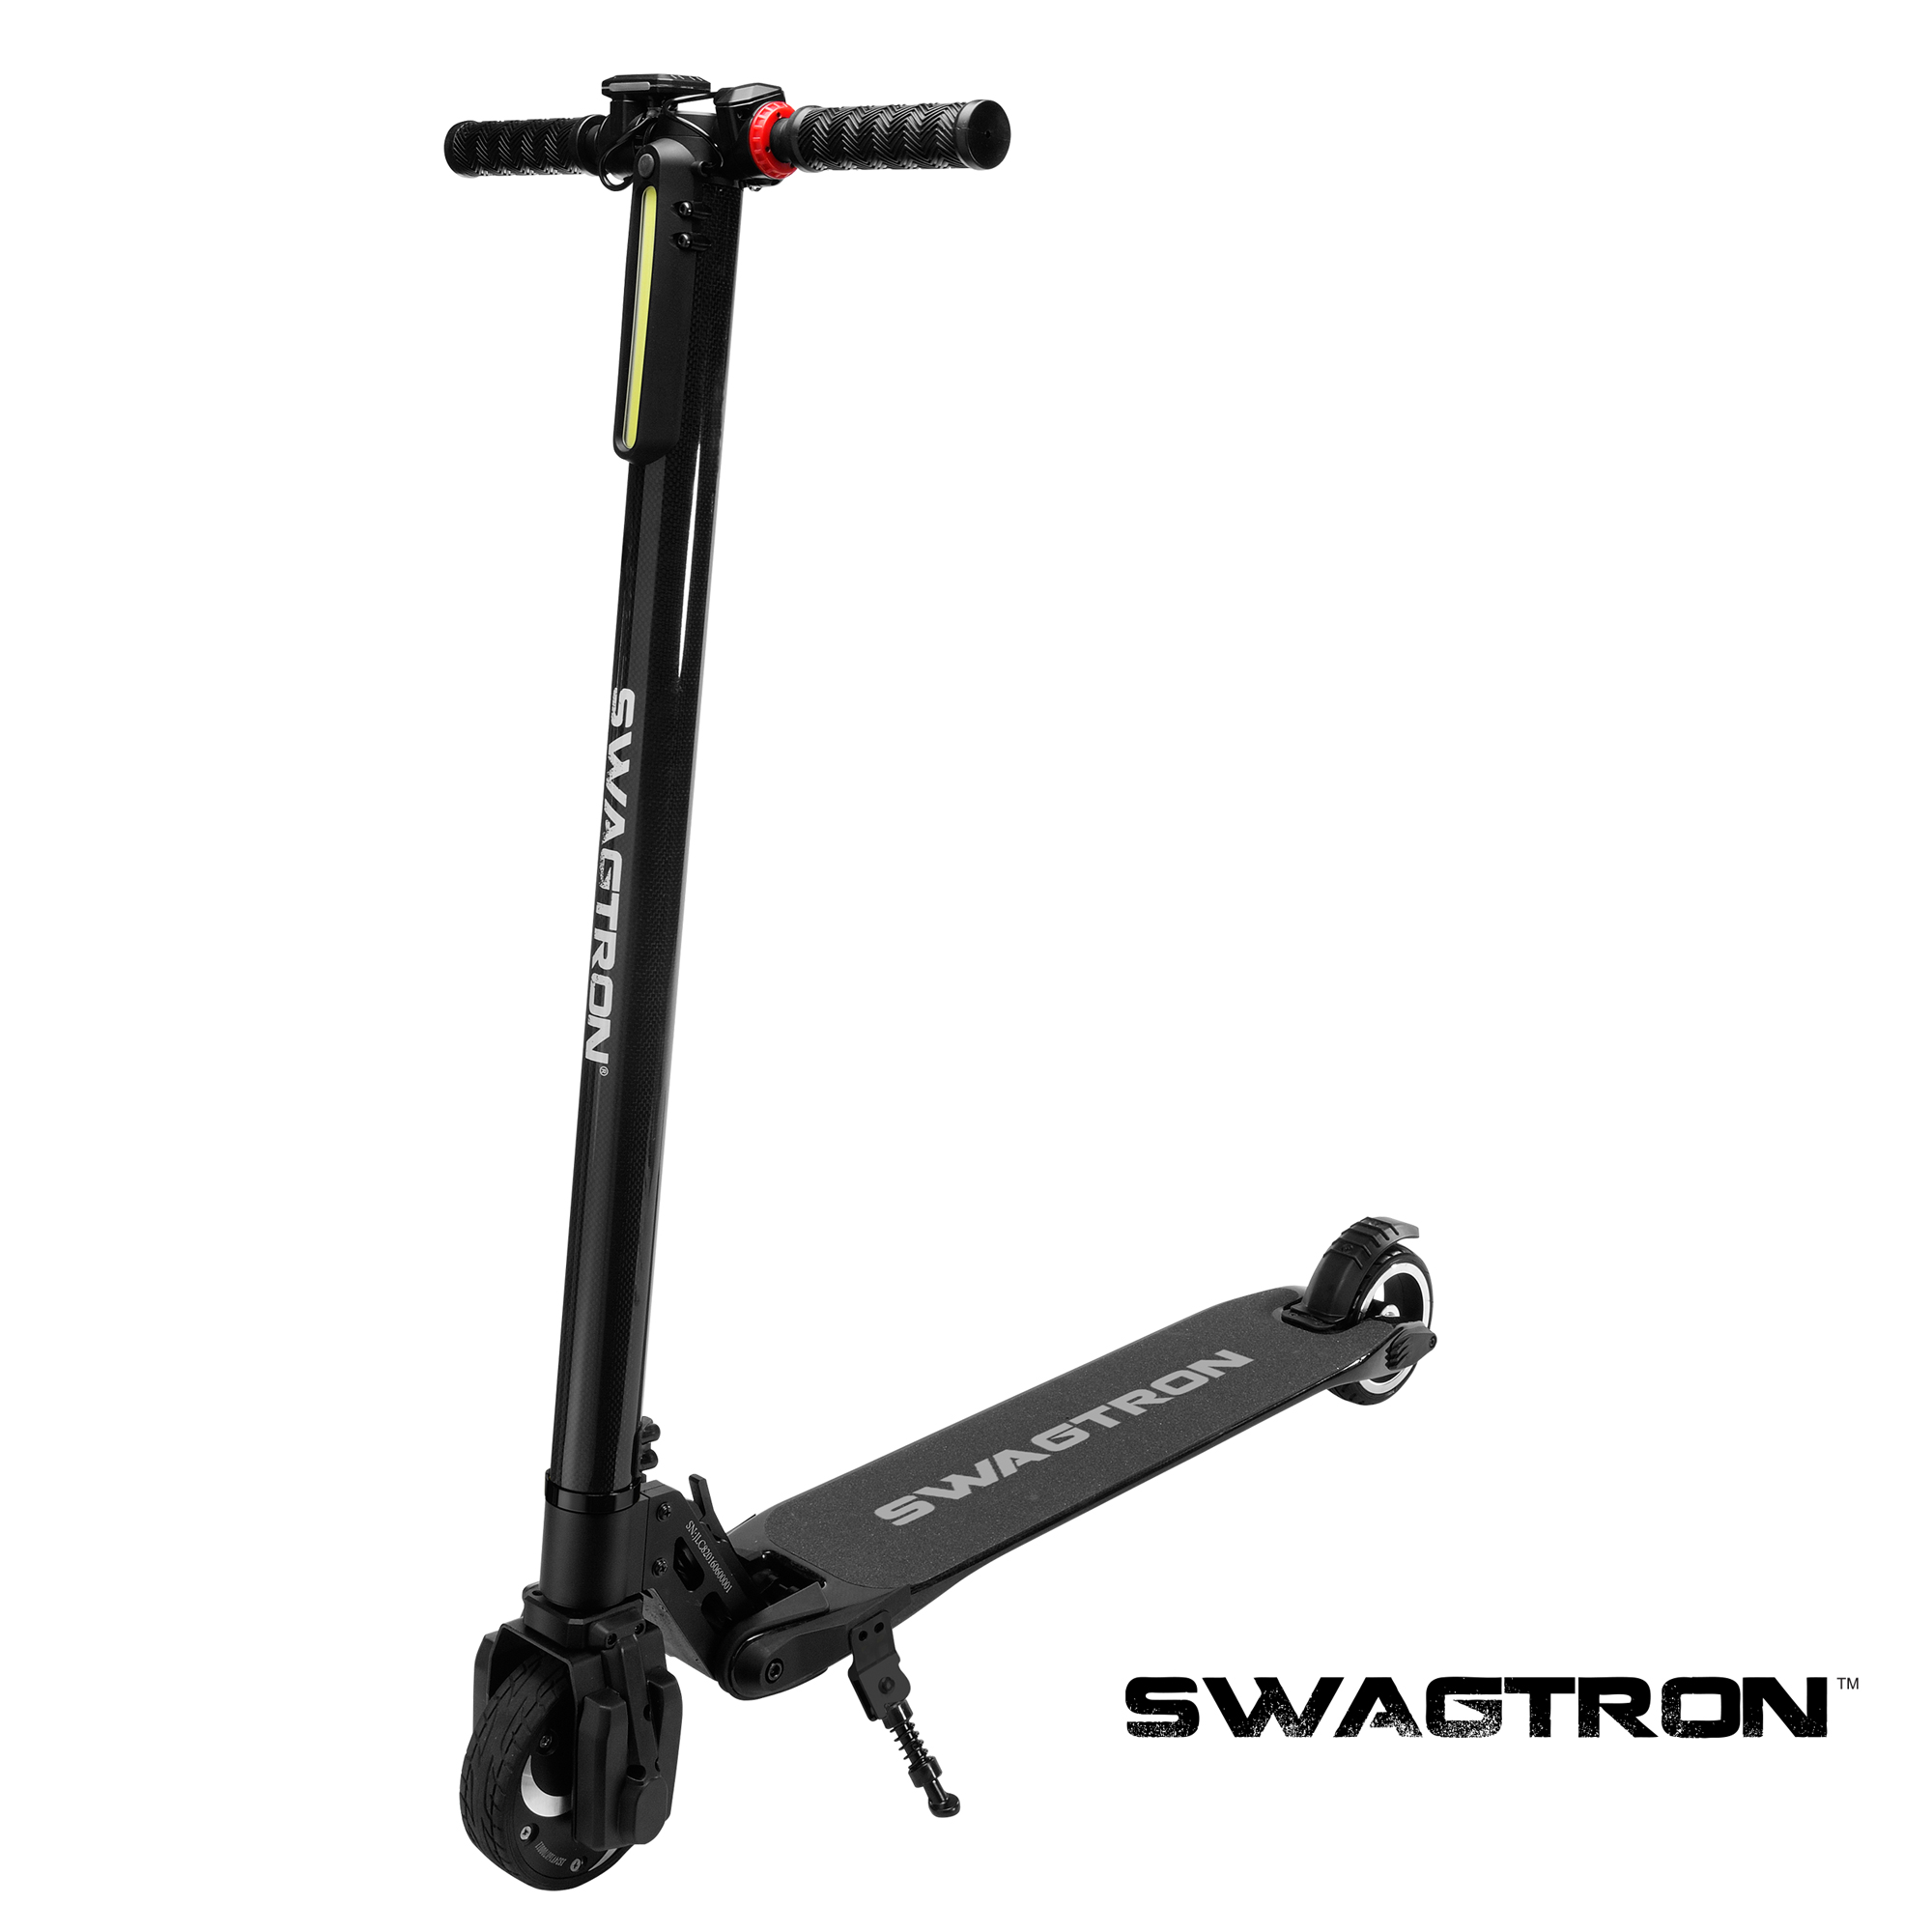 Swagger fast folding carbon fiber electric scooter adult for Folding motorized scooter for adults